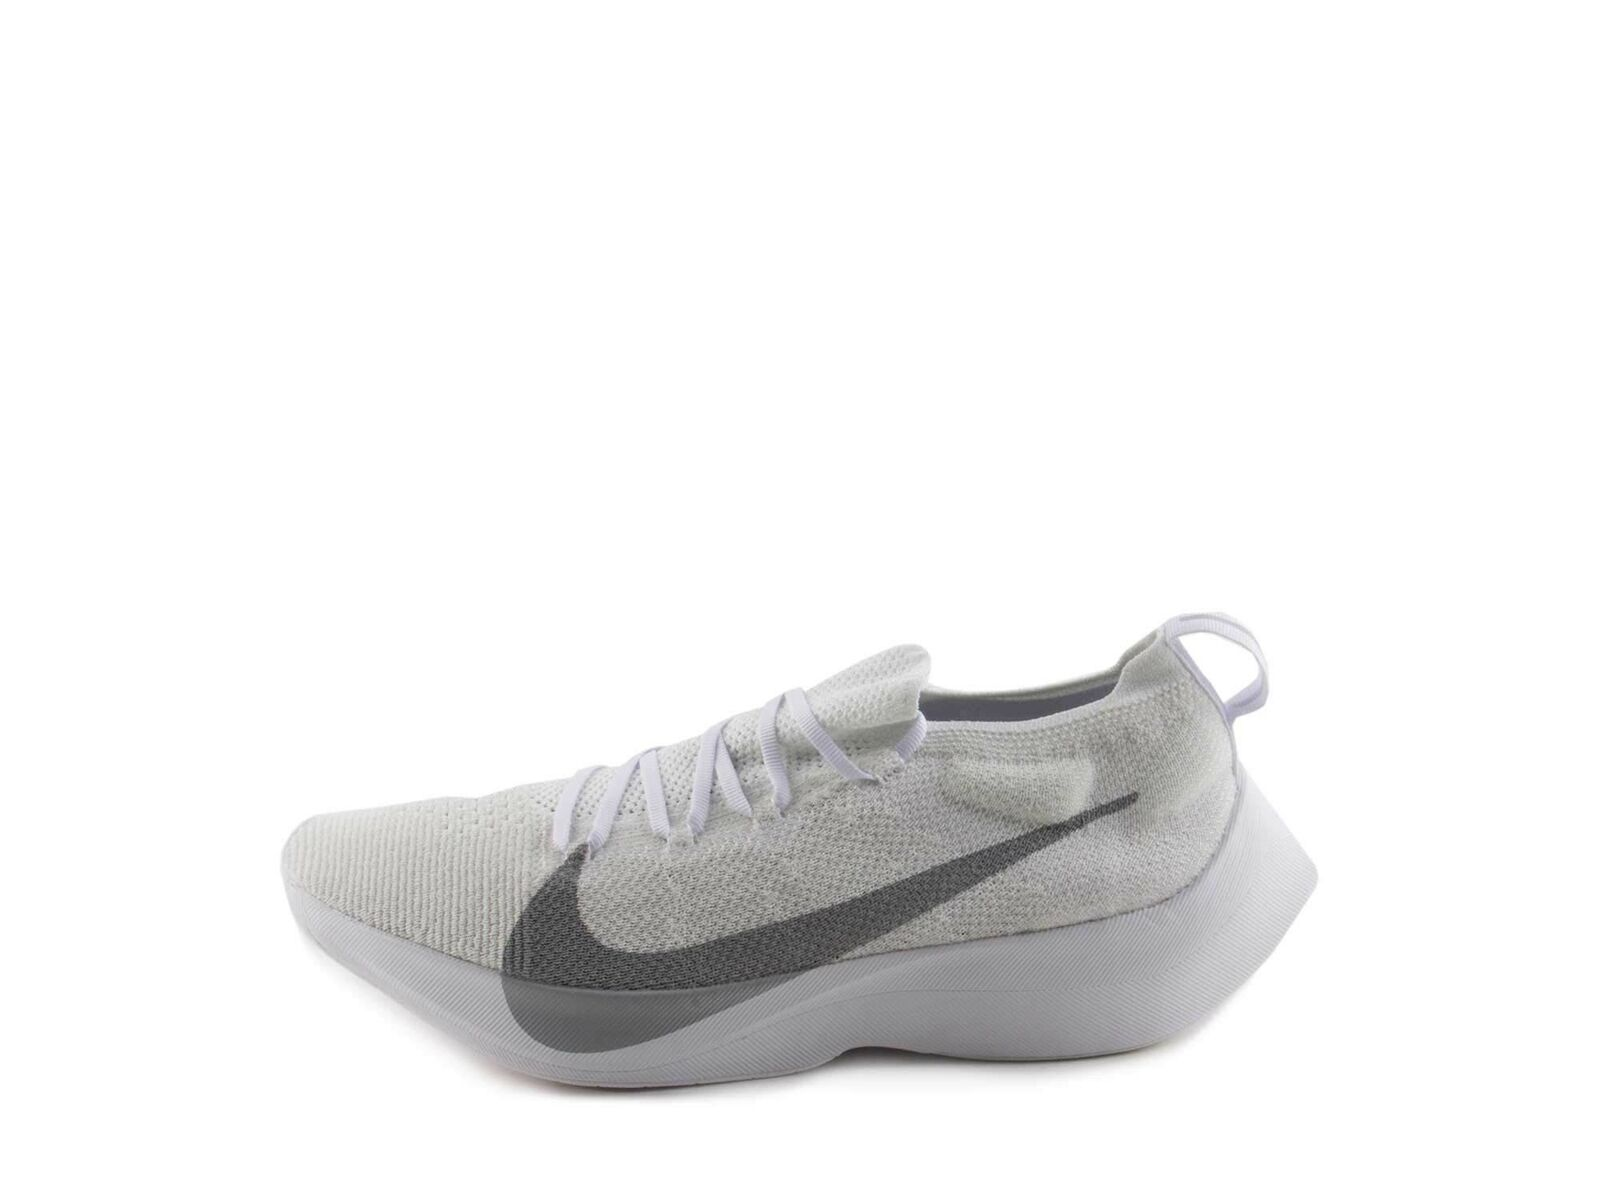 7317547f91 Nike Men's Vapor Street Flyknit, White Grey, 11 M US Wolf  nszdib4125-Athletic Shoes